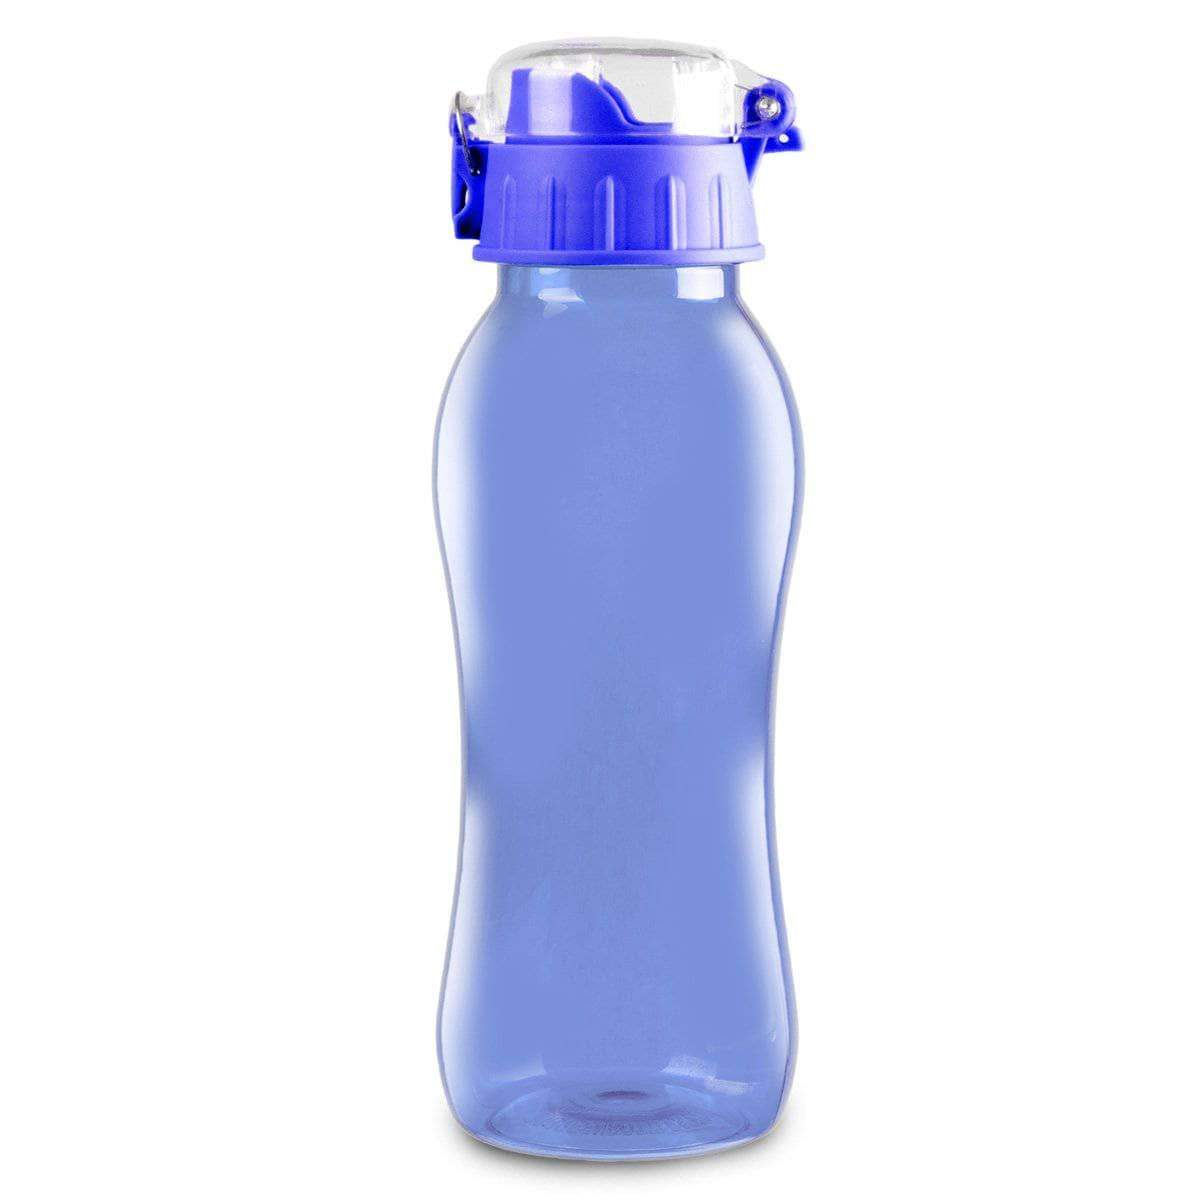 Geo Bottles Bottles Dark Blue 20oz BPA Free Sports Bottle With Wide Mouth Opening